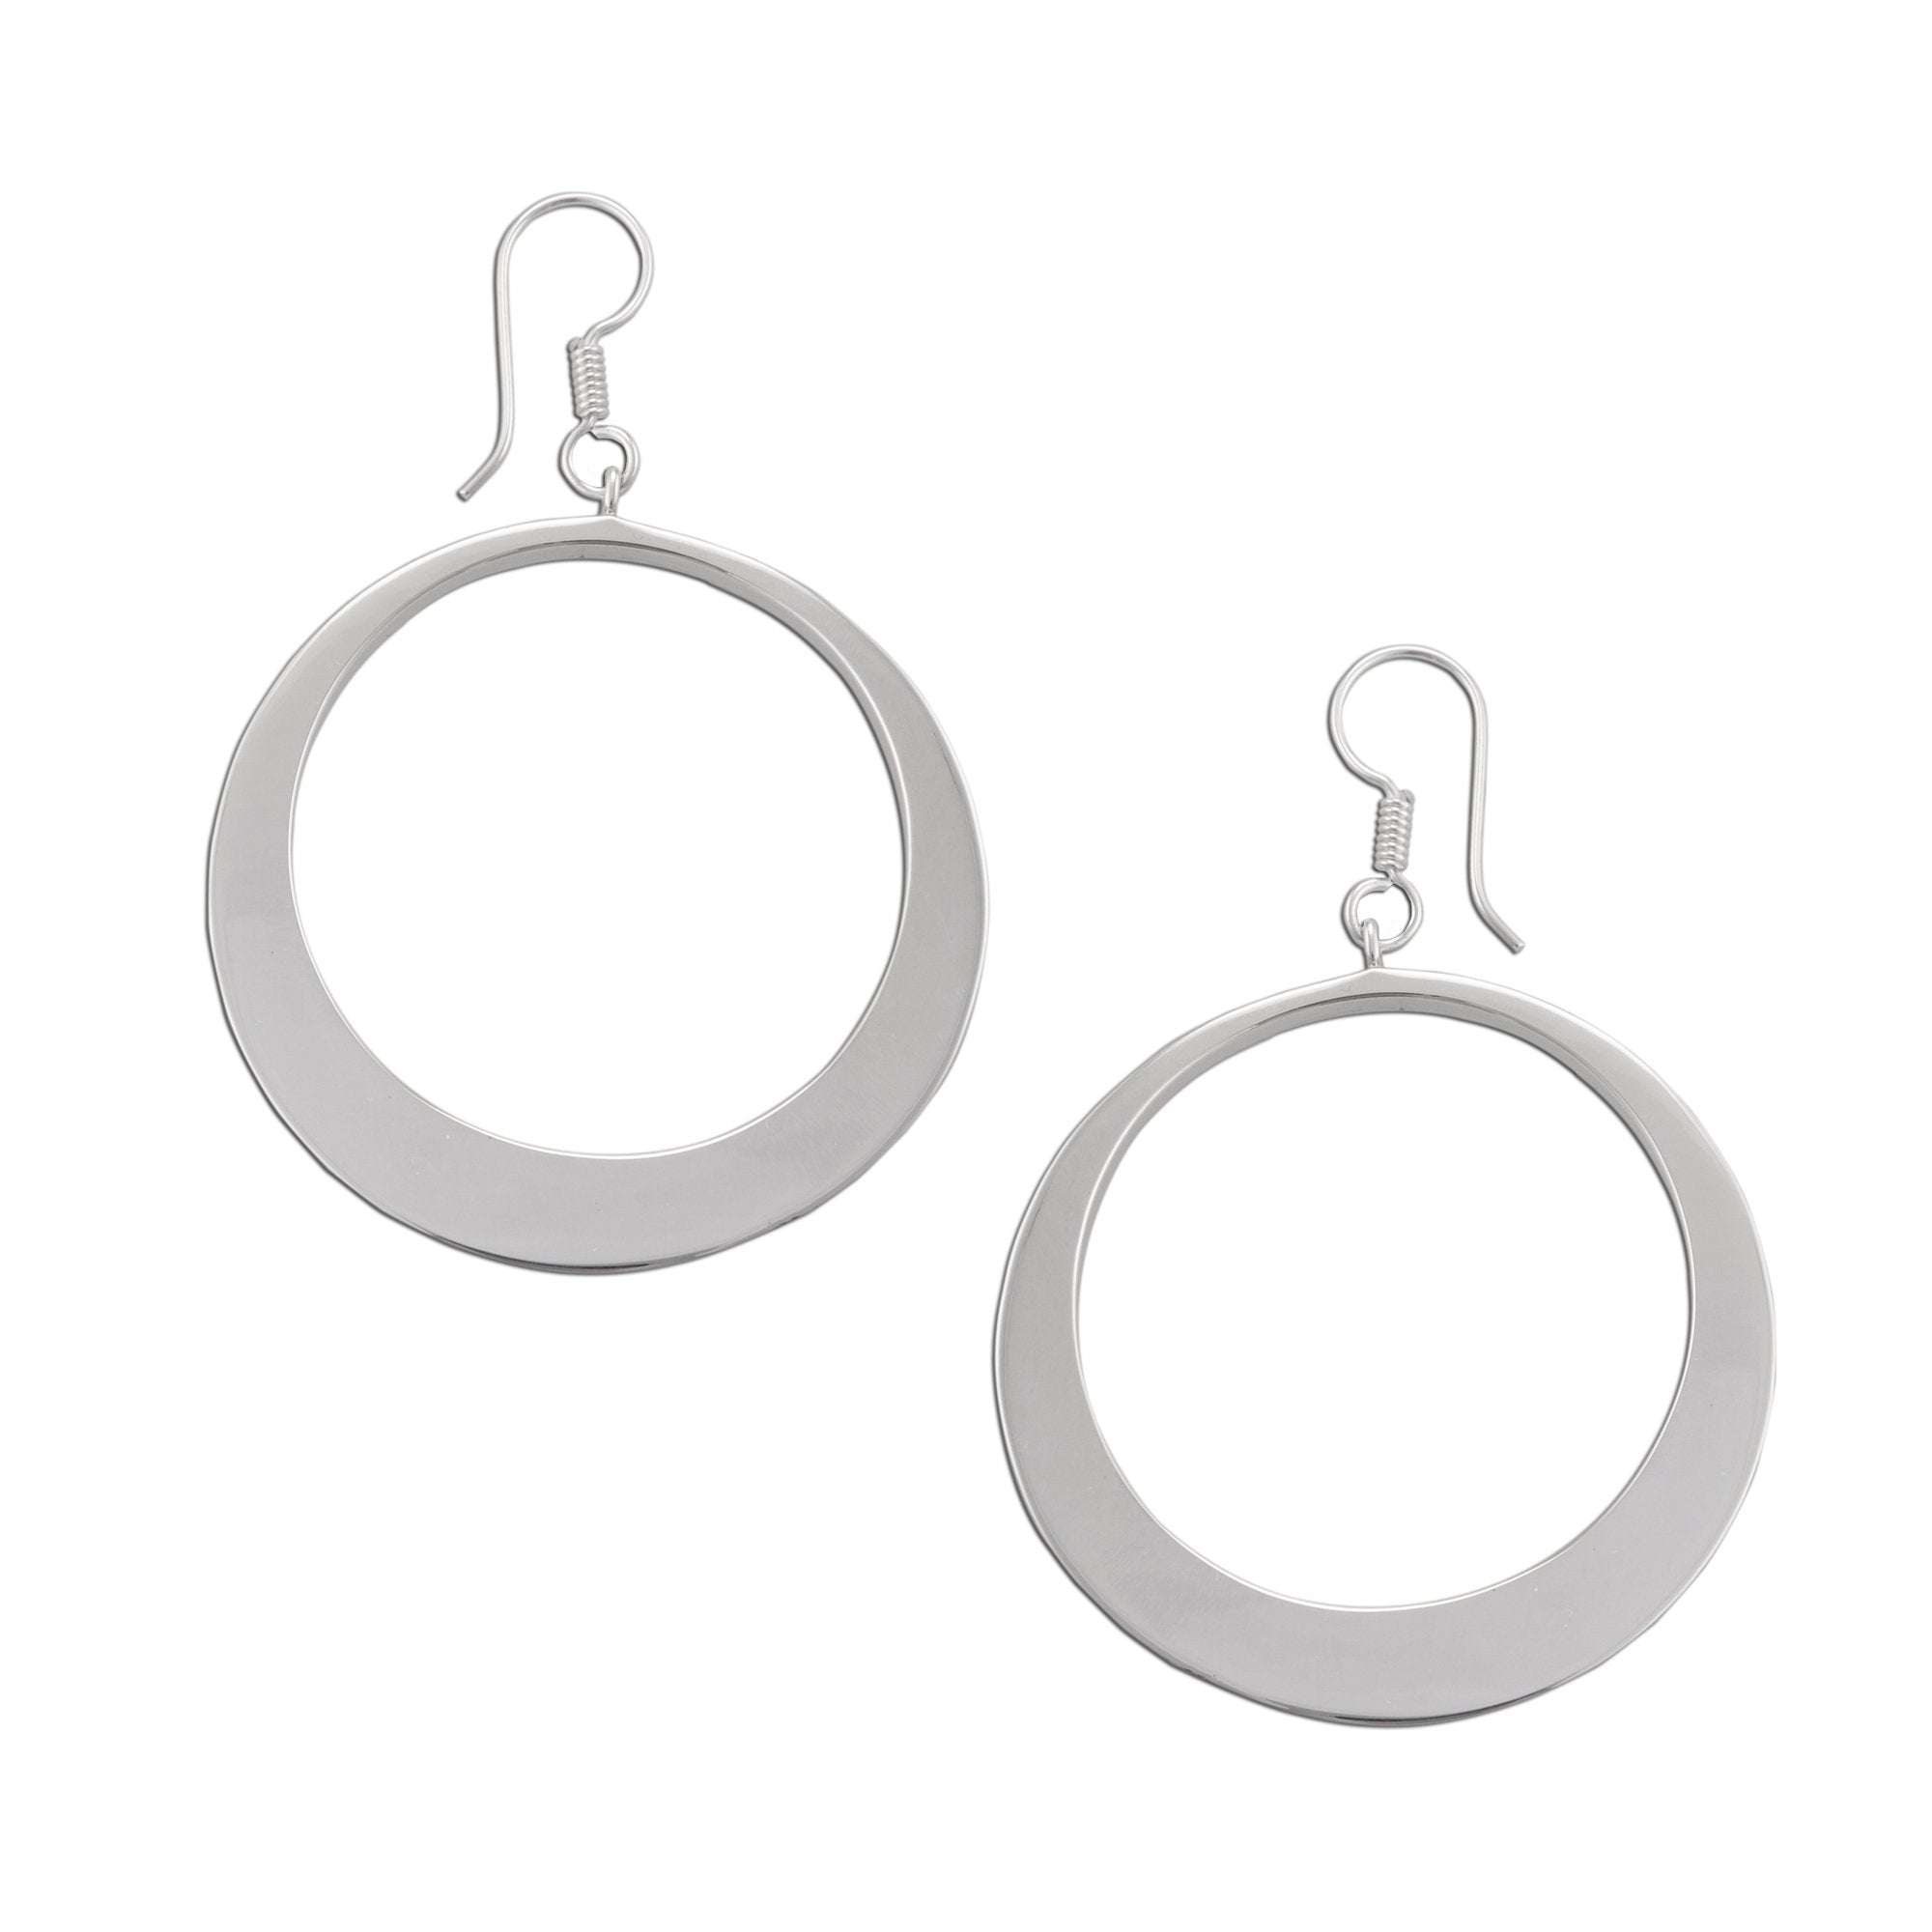 sterling-silver-earring - 1 - Charles Albert Inc